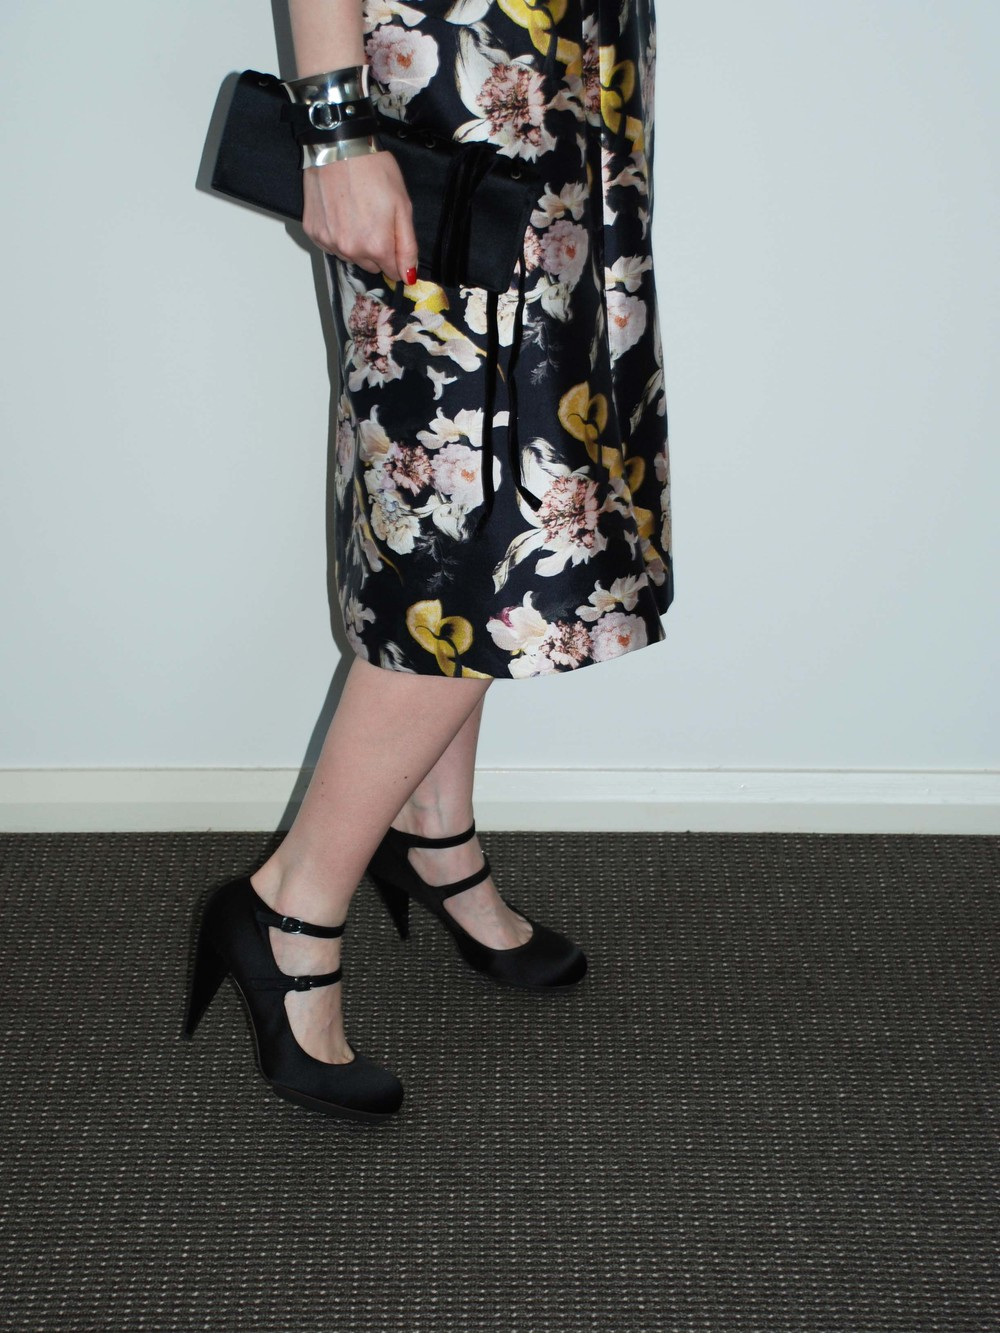 Ellery Dartagnan Dress with A-Line Skirt (Myer, $950AUD), Yves Saint Laurent Vintage Clutch (Ebay), Lanvin Shoes, Georg Jensen Cuff